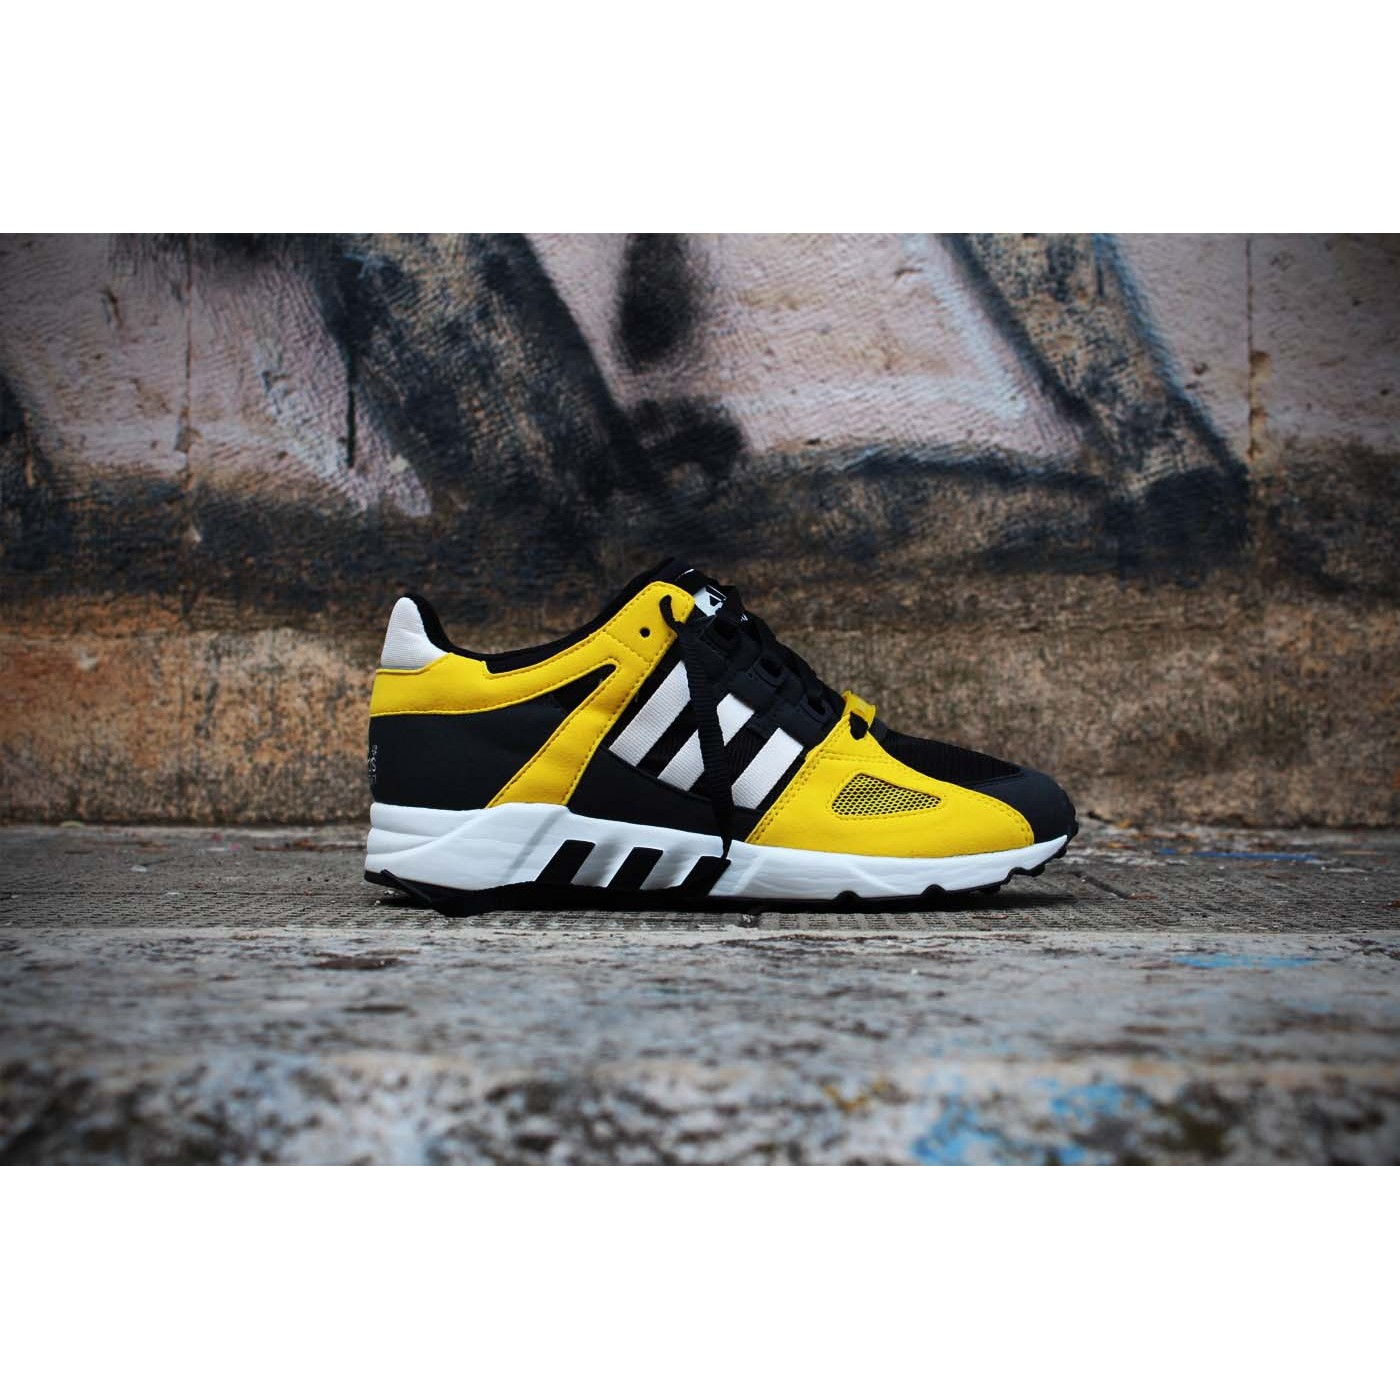 adidas EQT Support 93/16 Shoes Black adidas Ireland Sylt Support